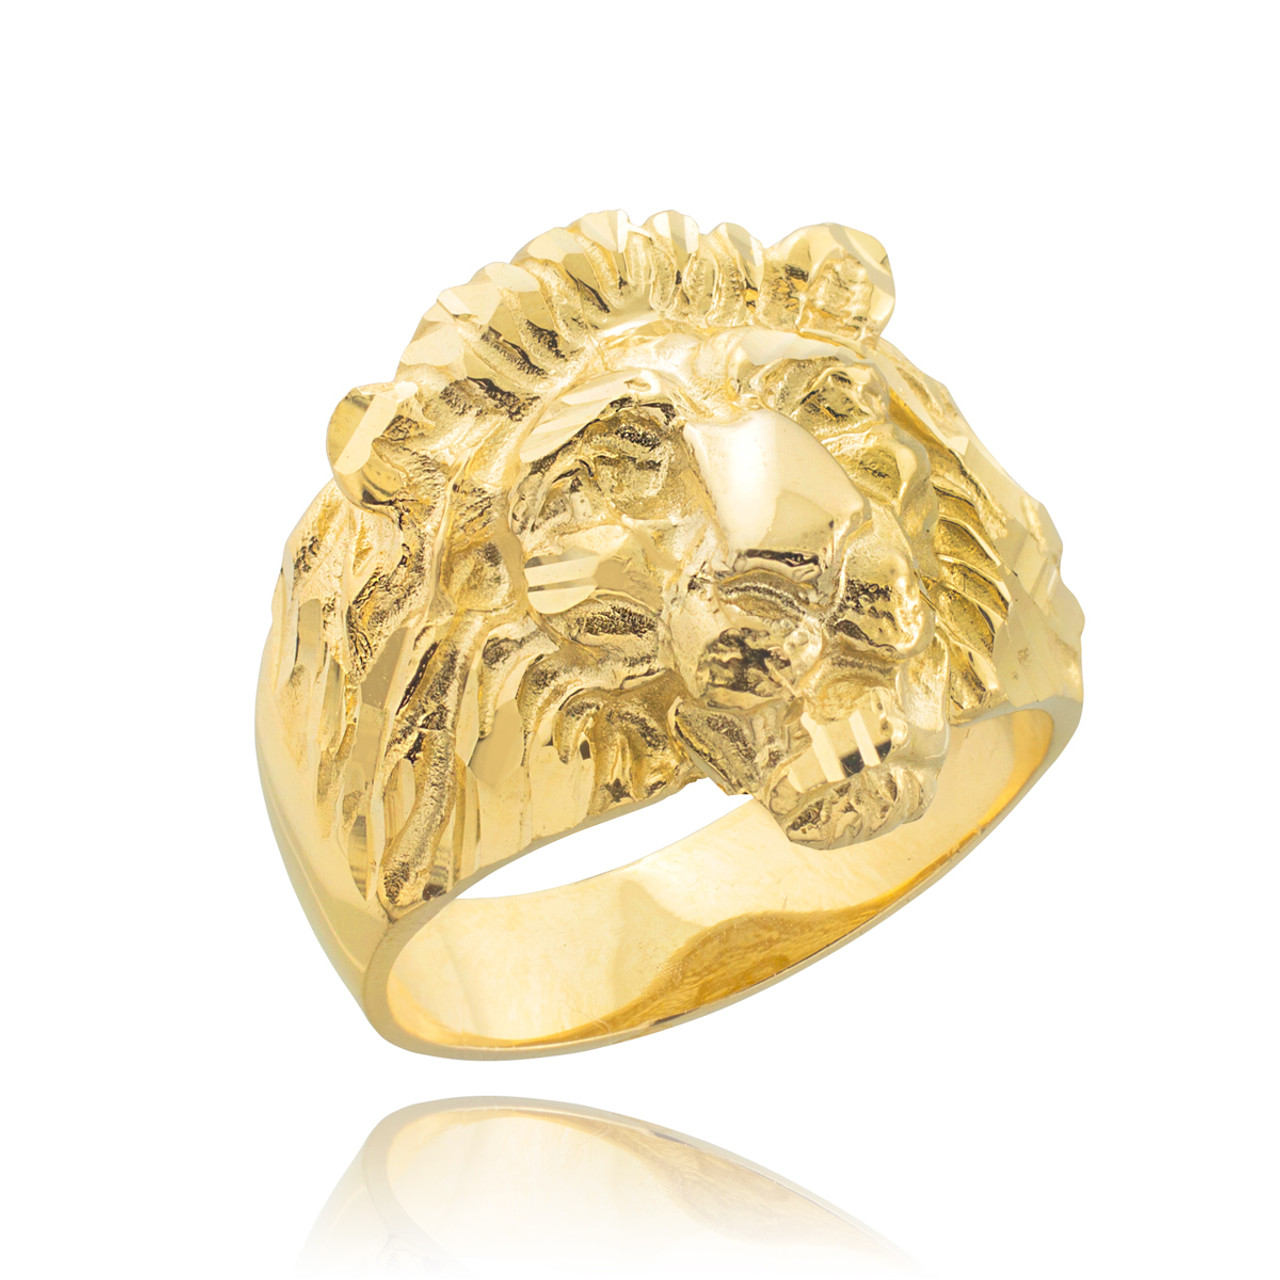 product ring design steel lion golden new head animal rings stainless king cool arrival